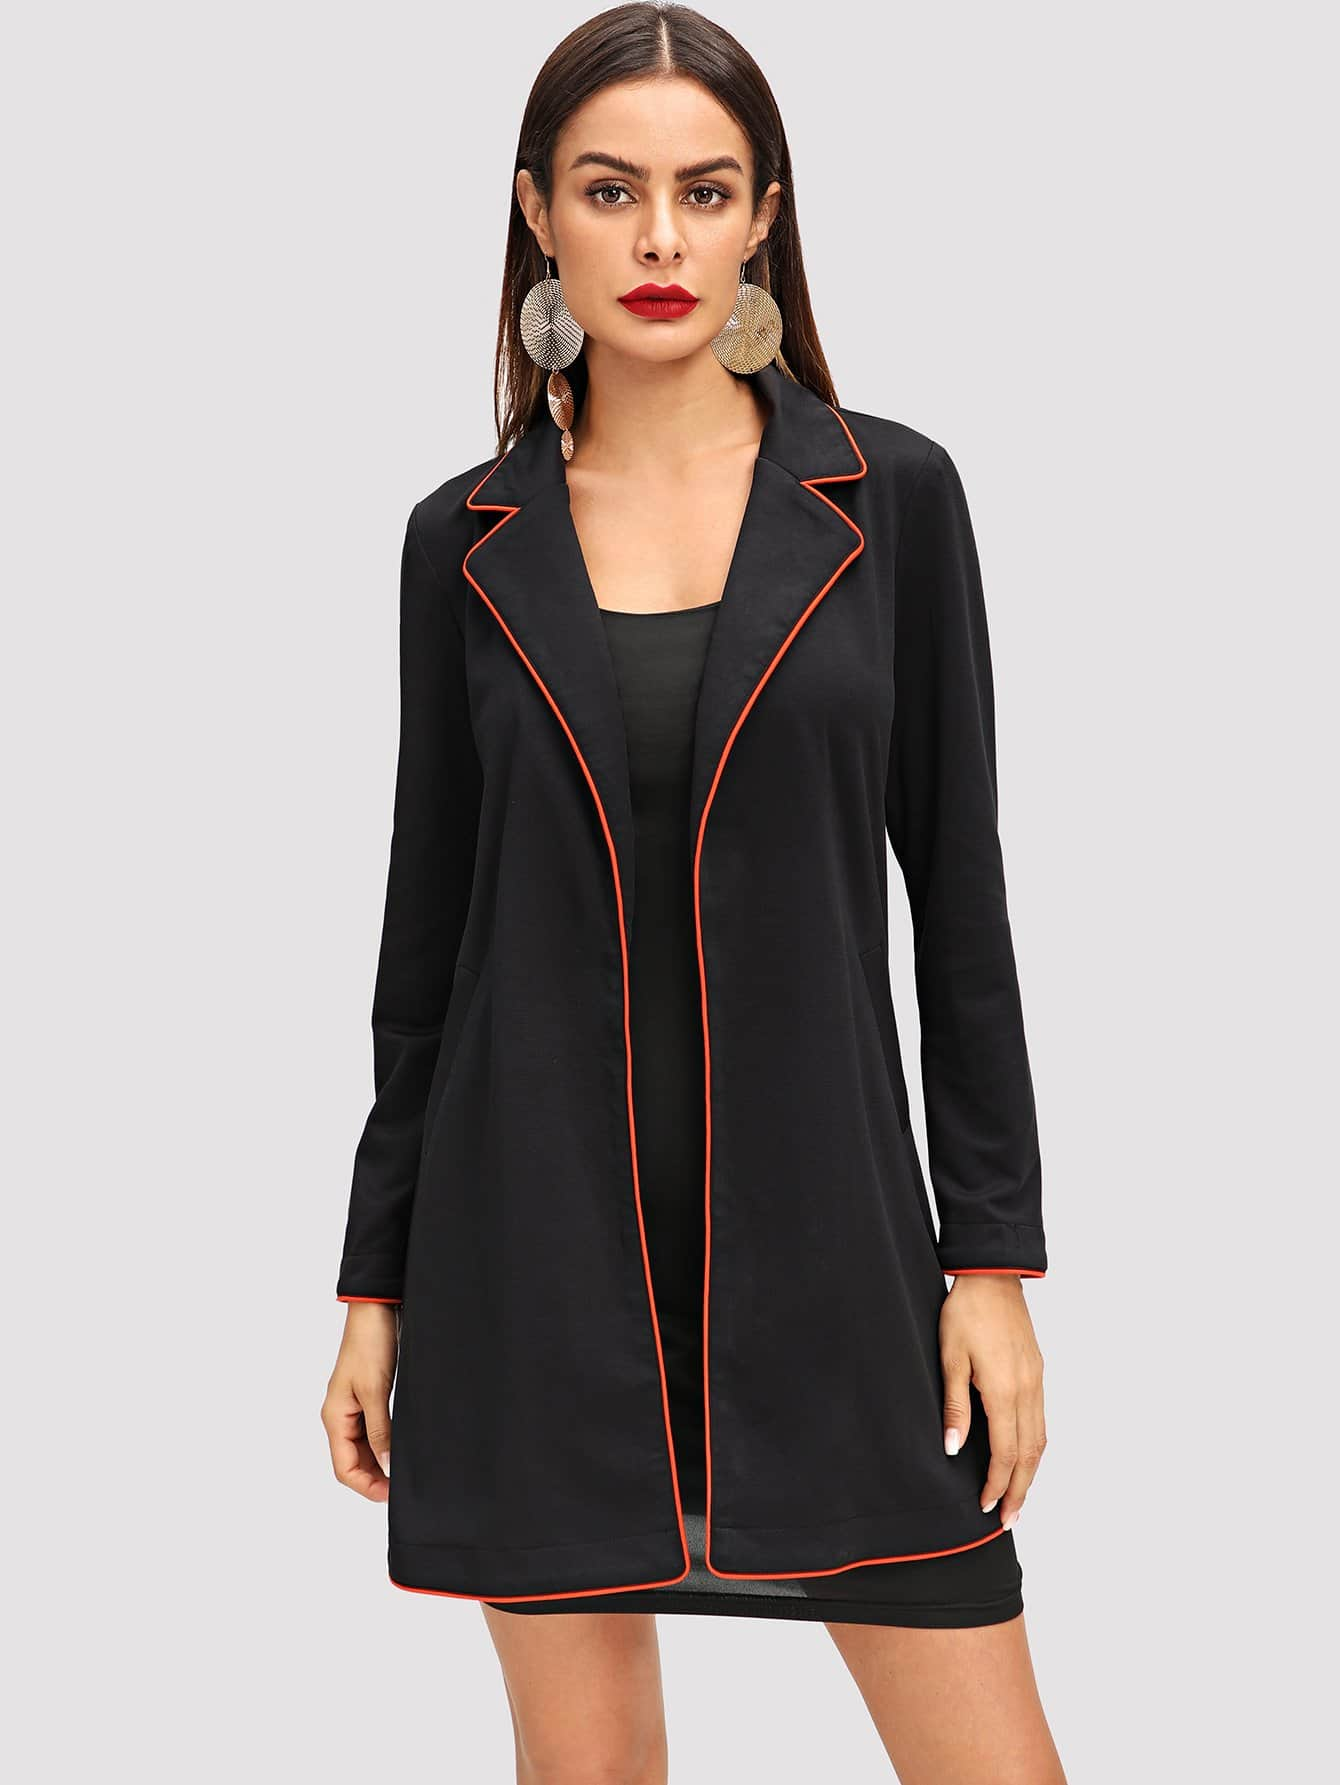 Contrast Tipping Notched Collar Coat mayer boch 143 092 дворники пластик 2шт 18